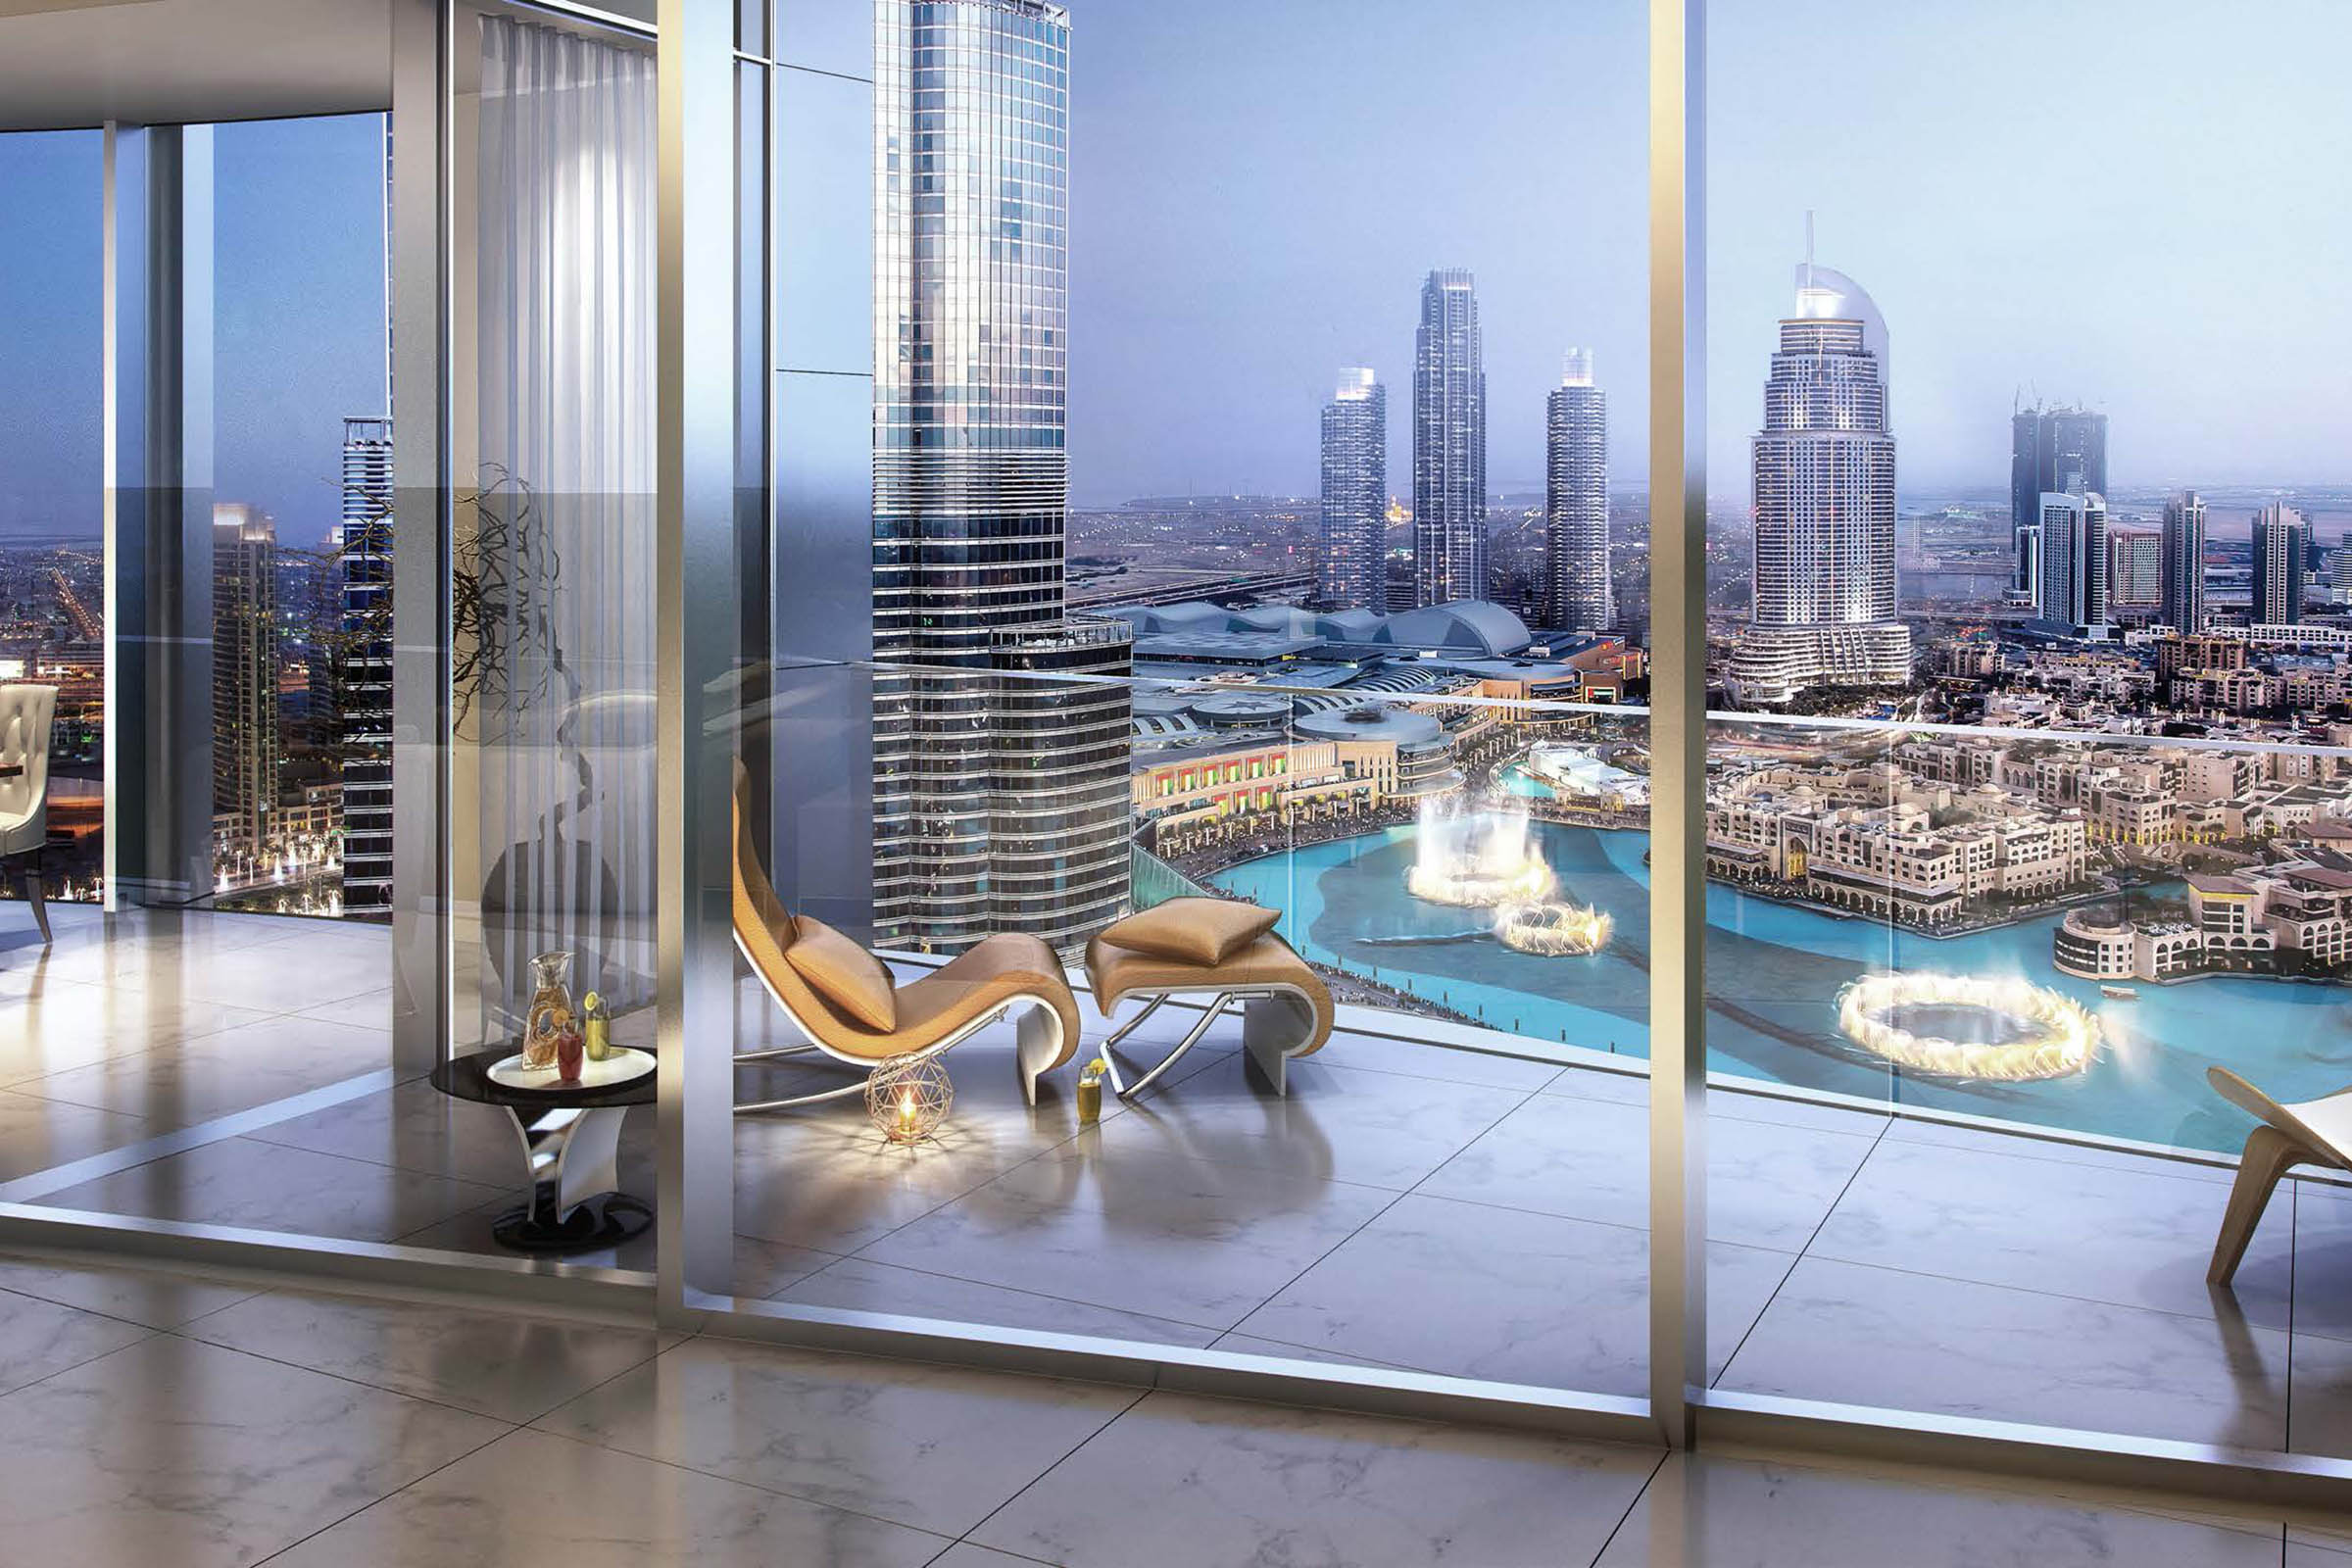 Luxurious Six Bedroom in the heart of Dubai